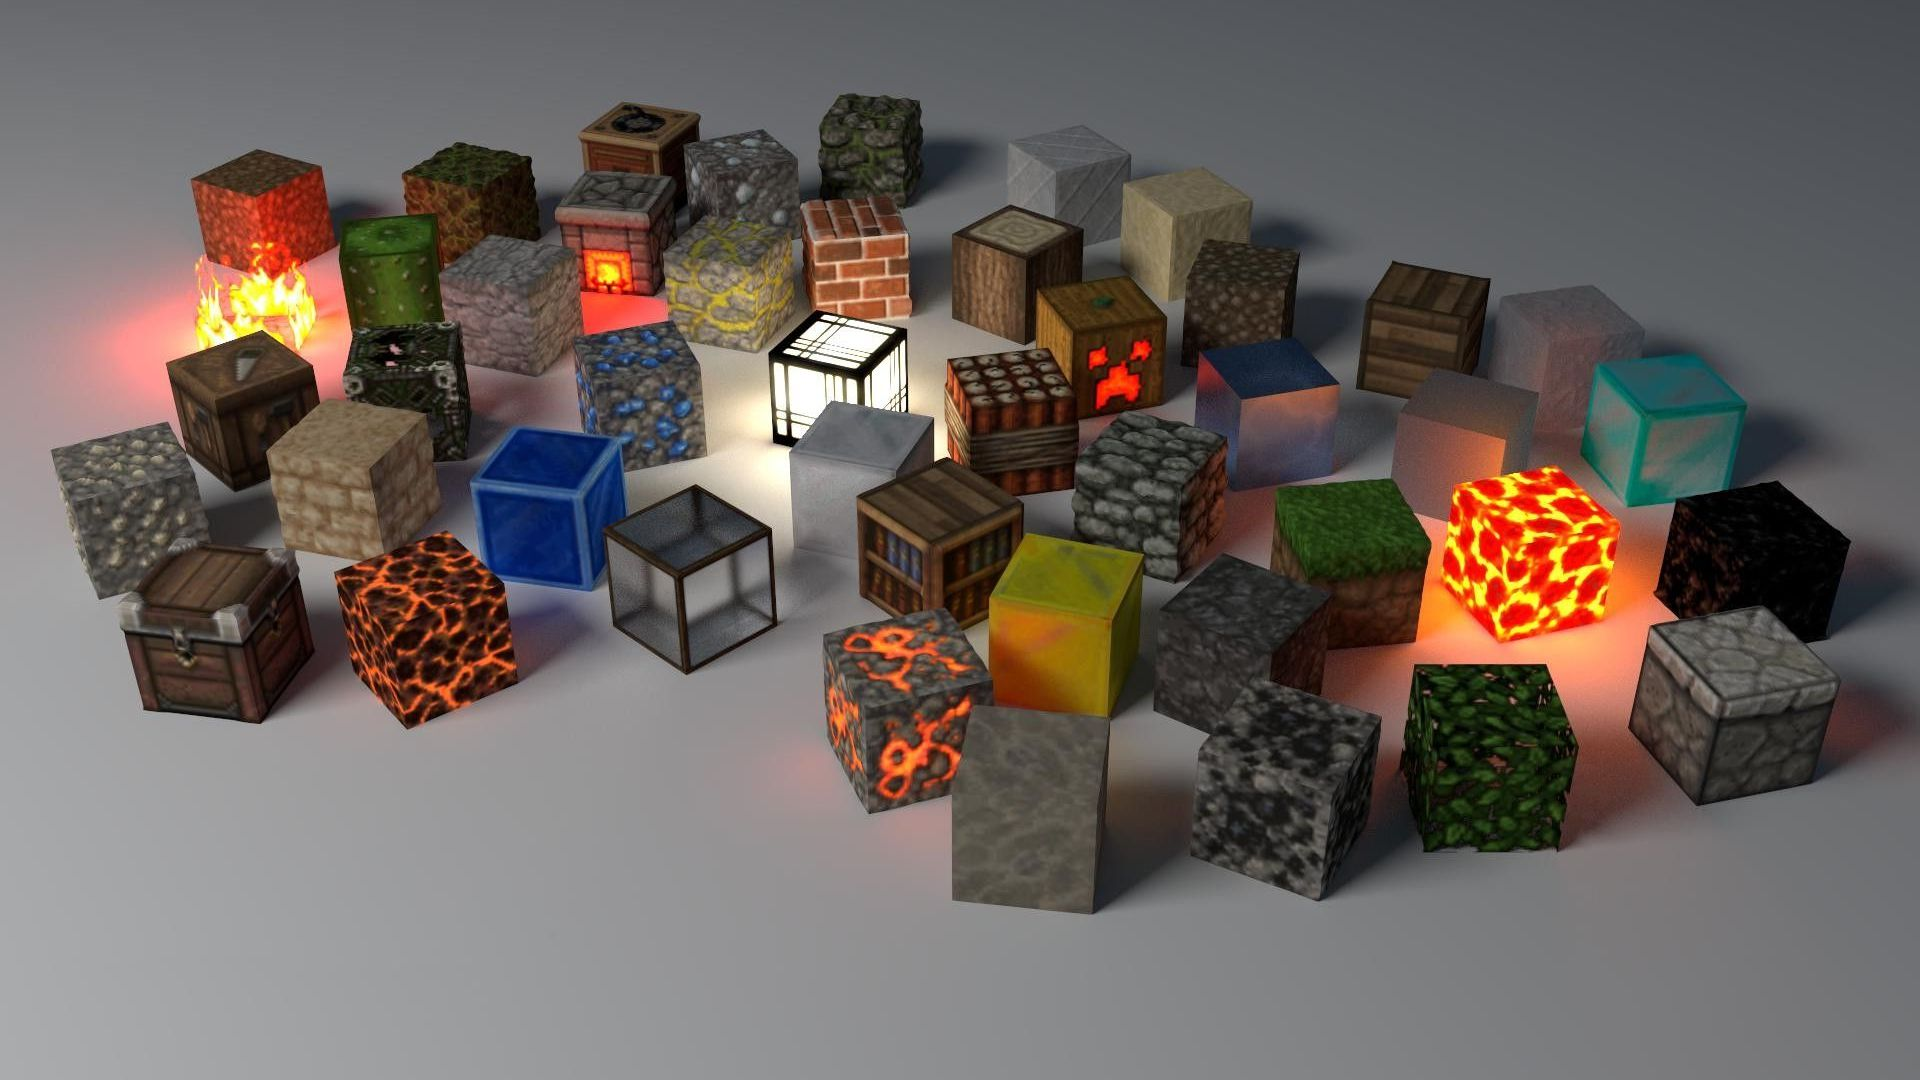 Best Wallpaper Minecraft Desktop - Awesome-Halloween-Minecraft-Wallpapers  Collection_6911100.jpg